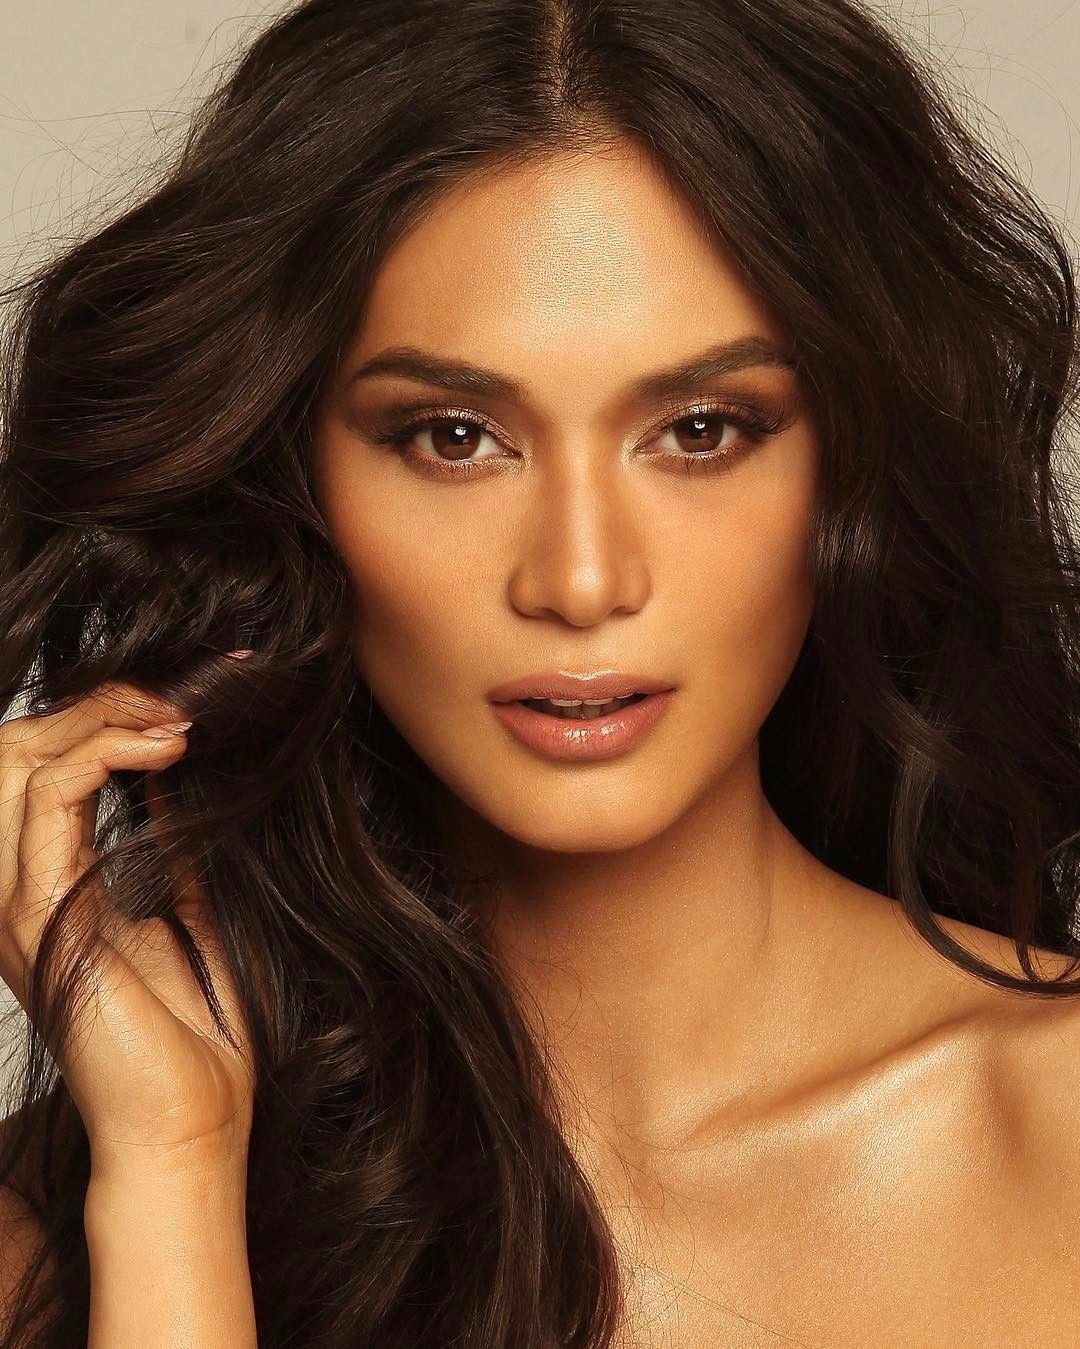 15feef7ab6 See Instagram photos and videos from Pia Wurtzbach